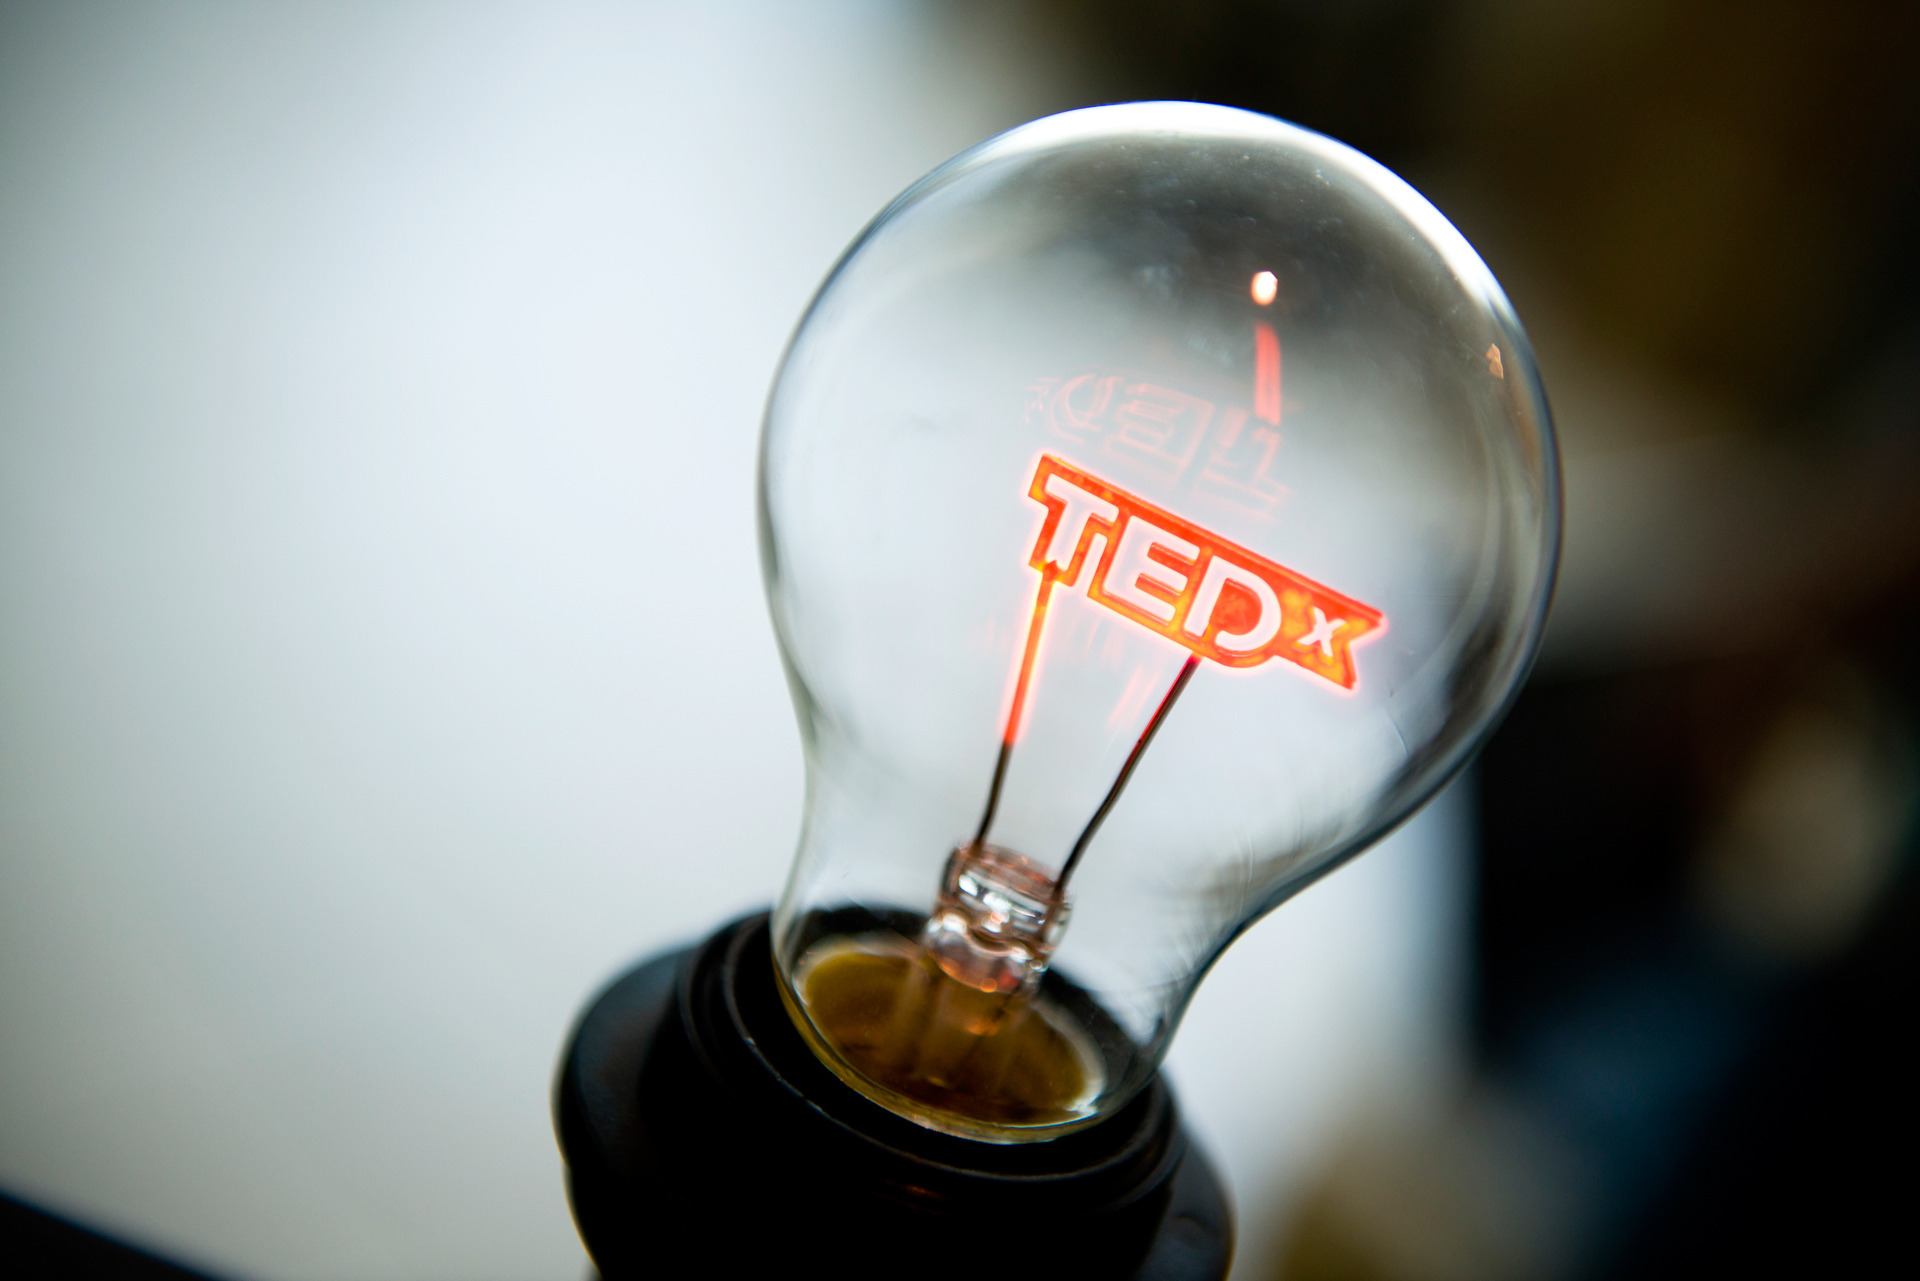 Tedx lightbulb filament for TedxWinterPark upcoming event